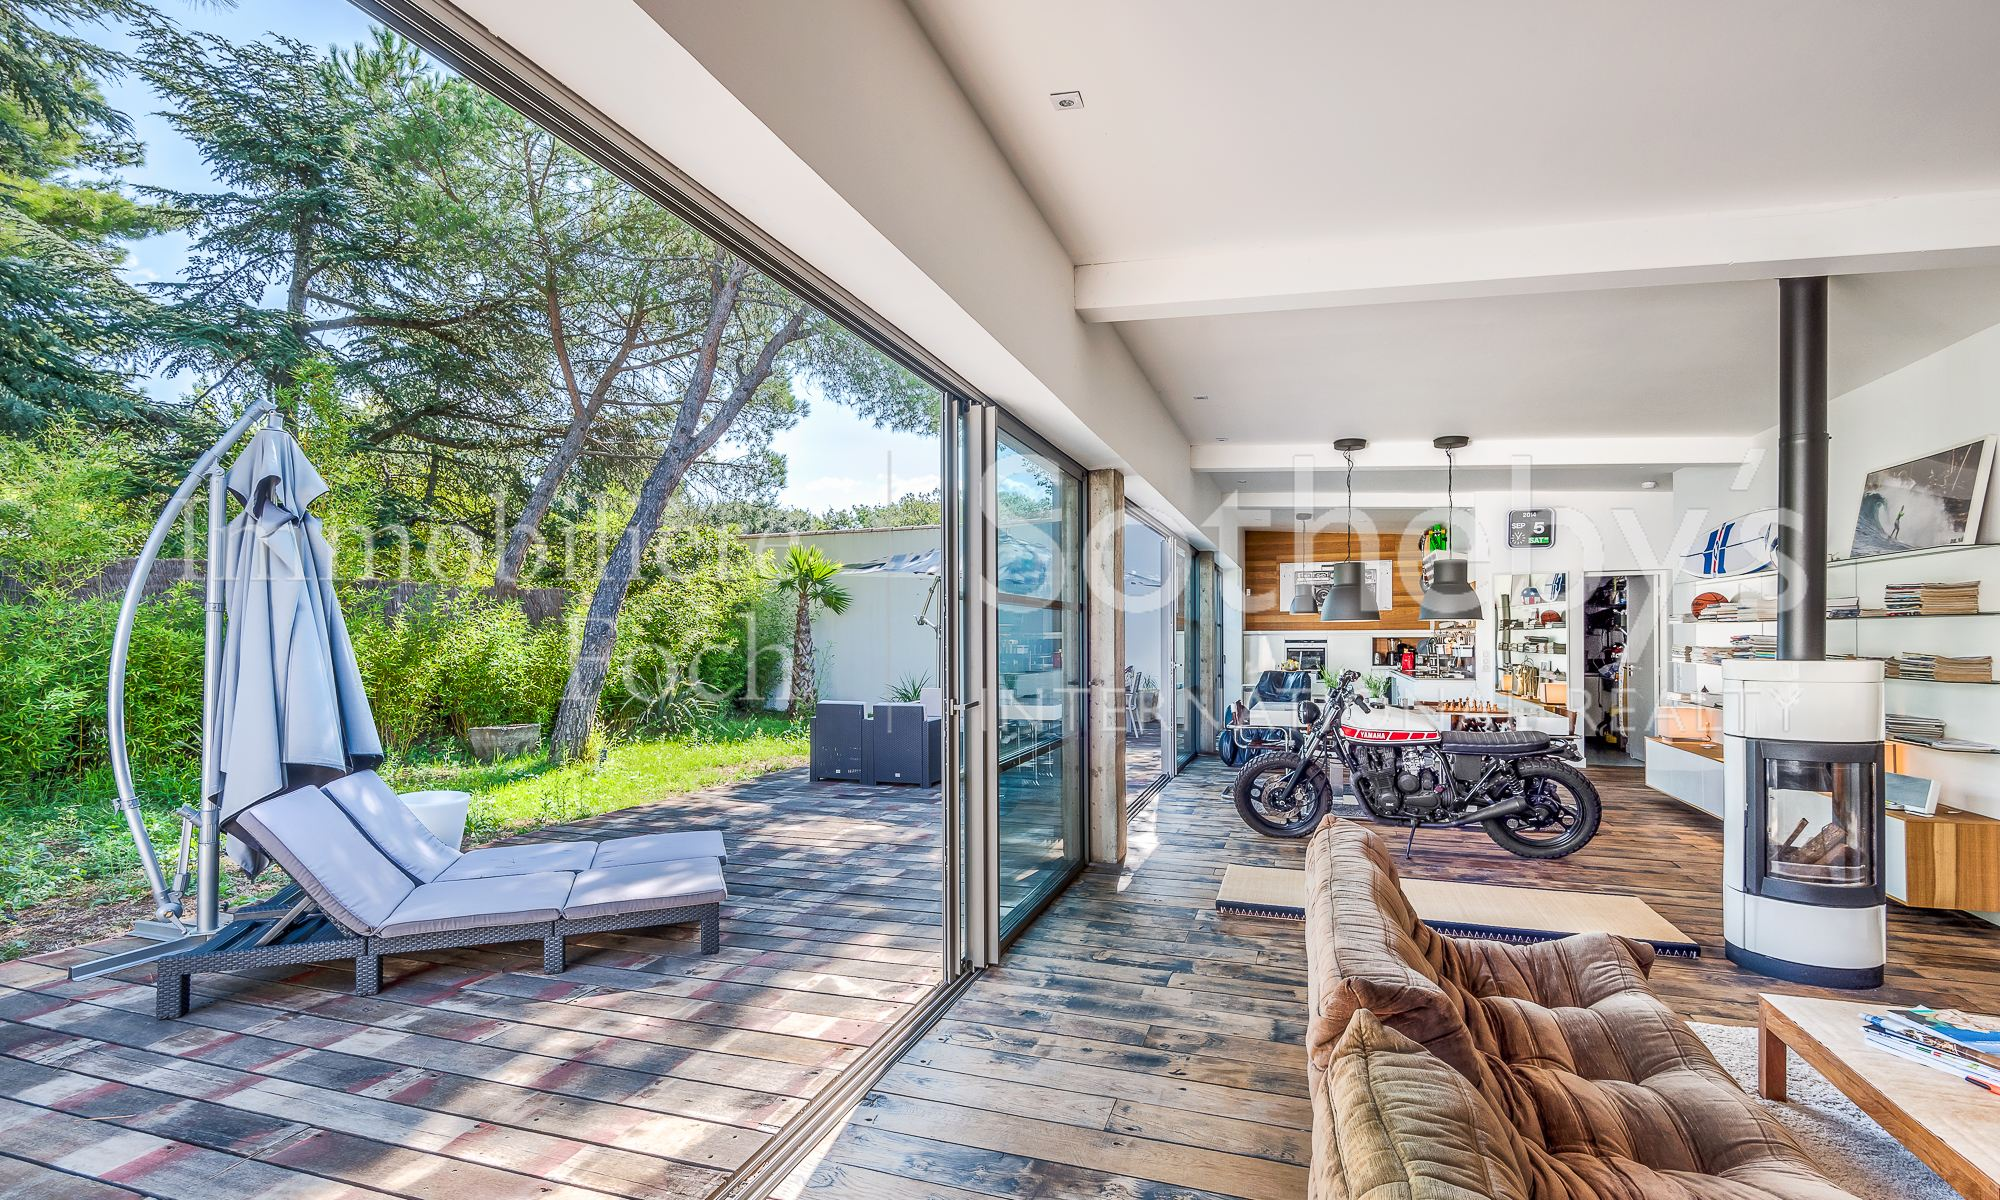 Single Family Home for Sale at Contemporary Villa - Montpellier Other Languedoc-Roussillon, Languedoc-Roussillon 34430 France